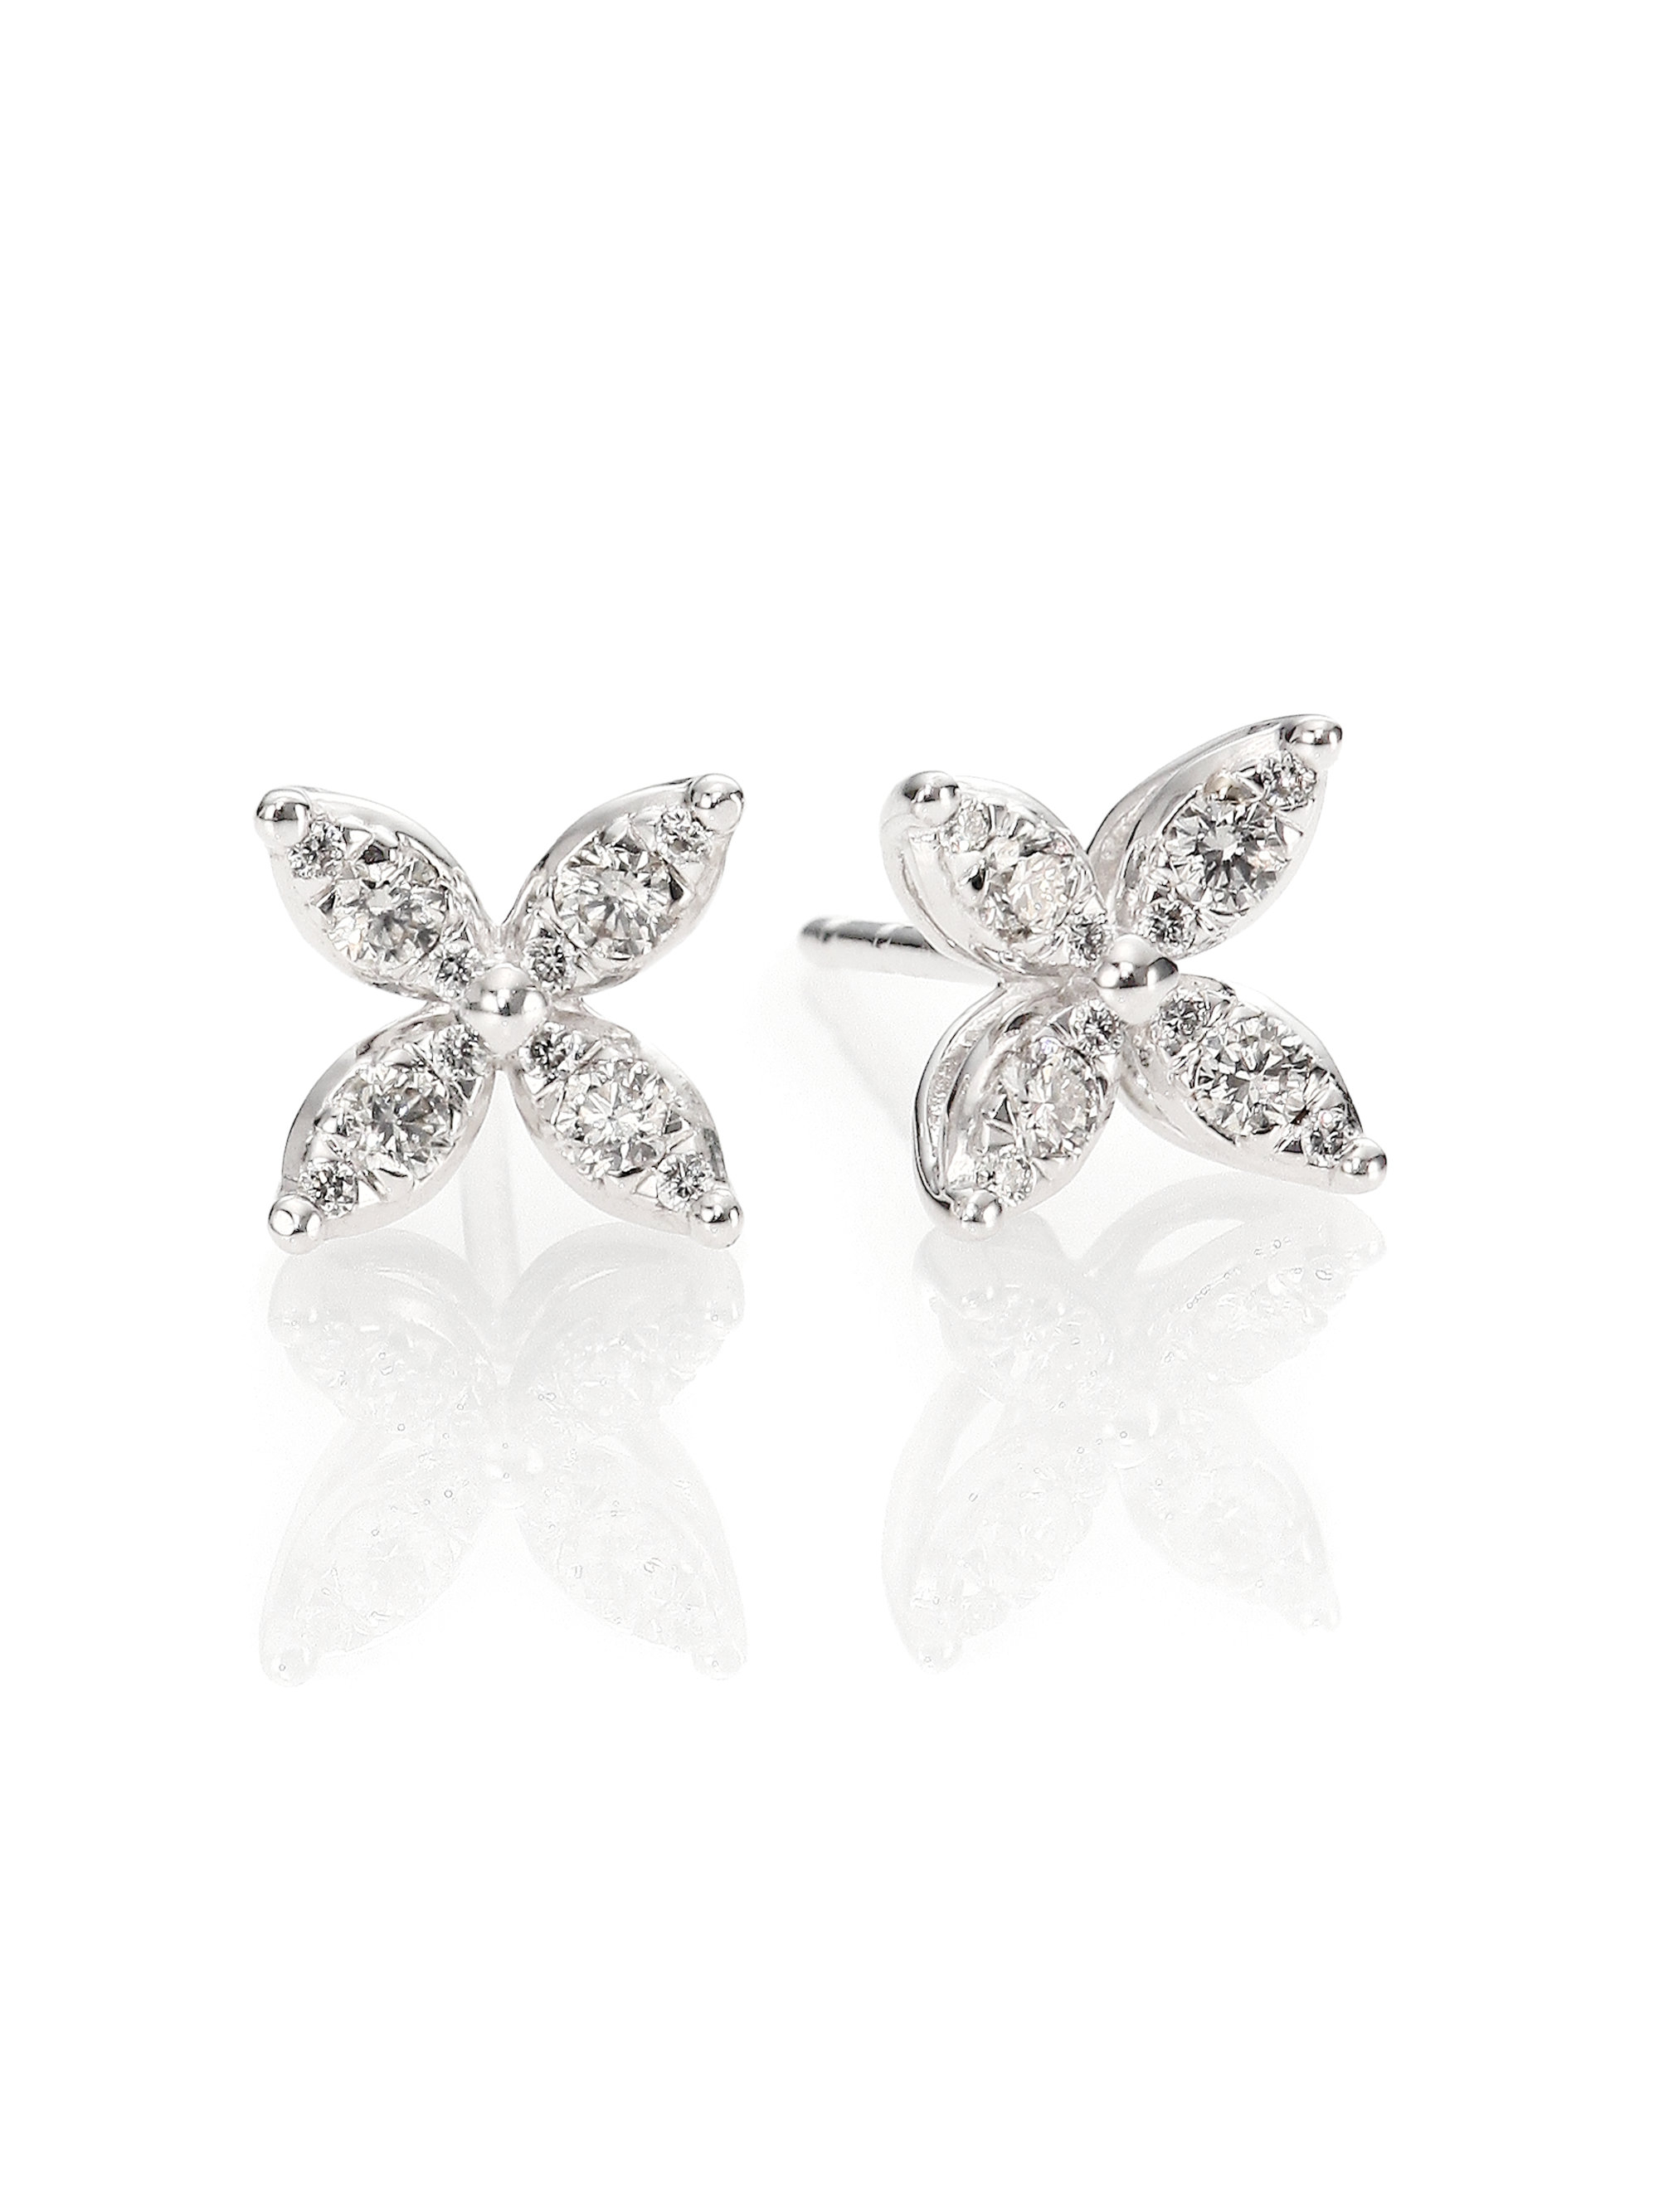 stud diamond earrings m baguette jewelry nikki test product jewellery